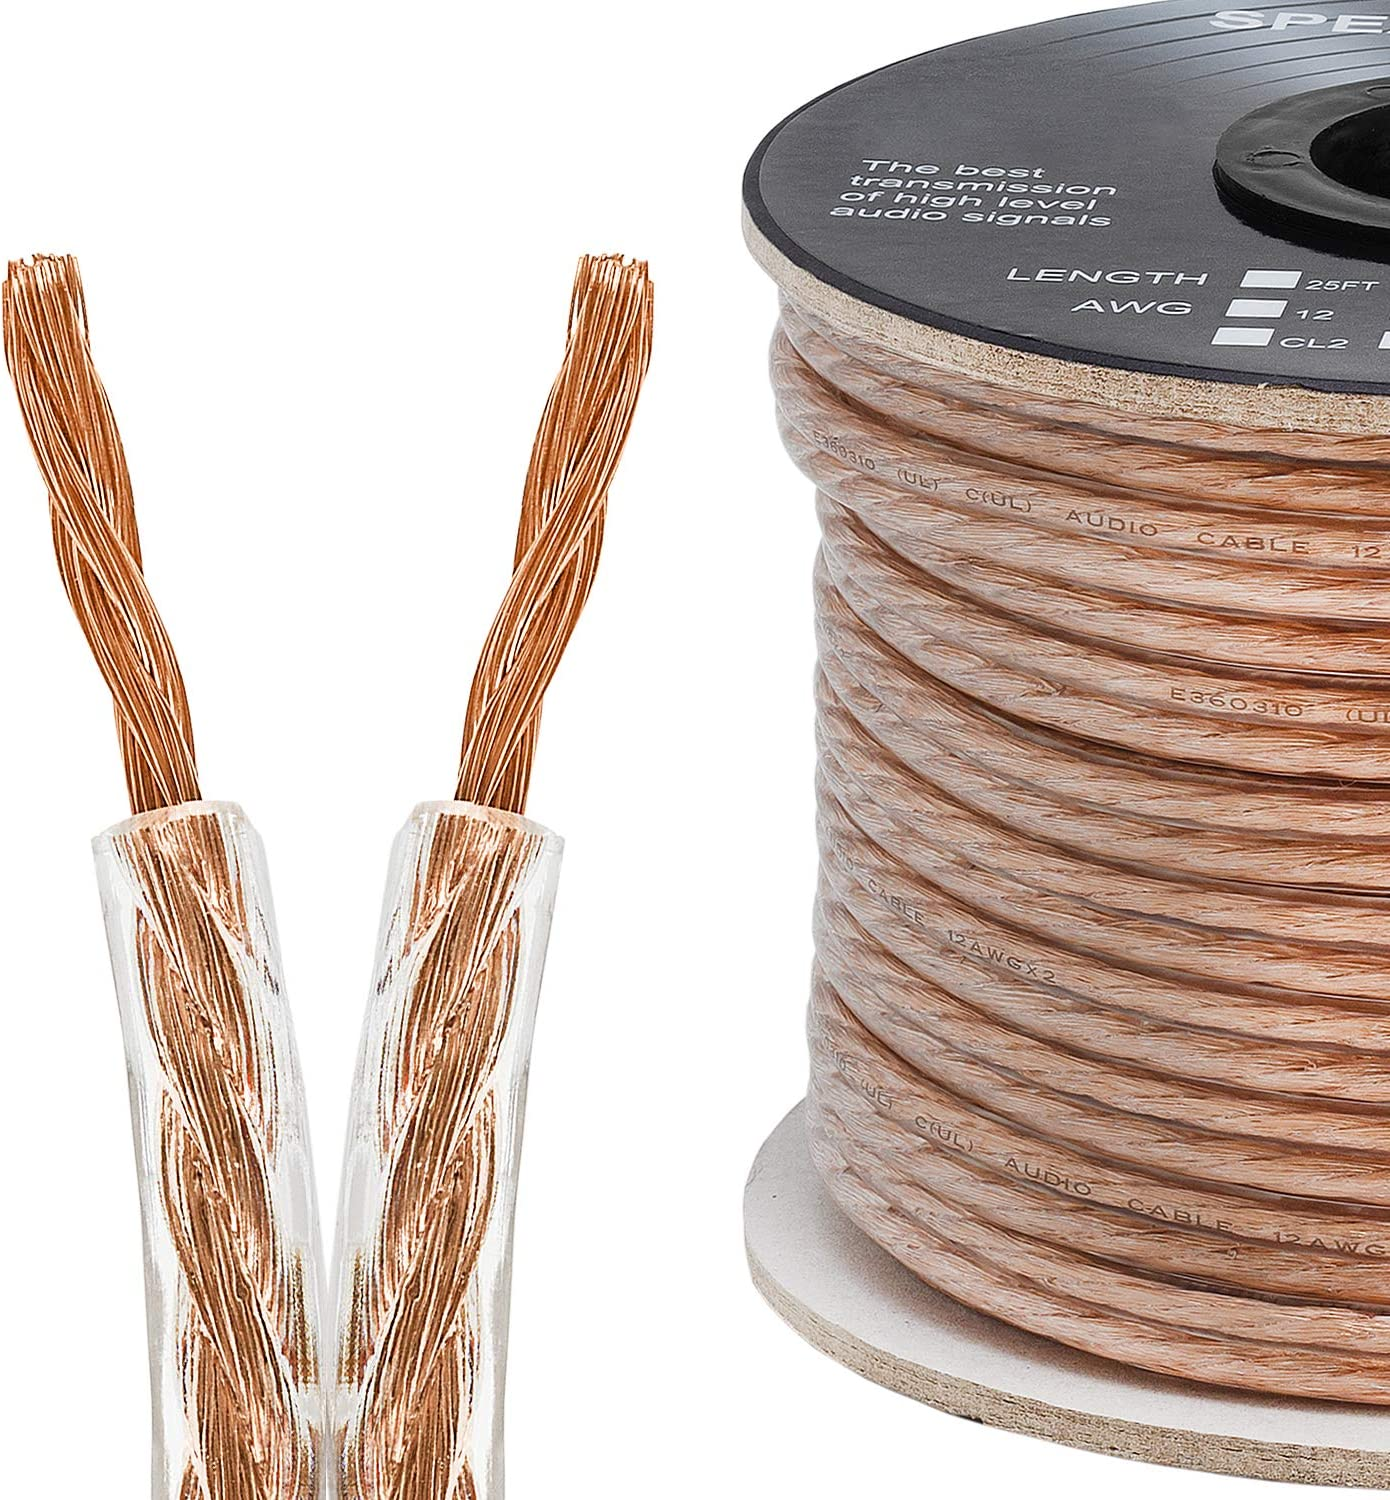 Cmple - 9 Conductor 19AWG Speaker Wire for Home Theater System, Amplifier,  Car Audio Speaker Cable - 9 Feet, Clear